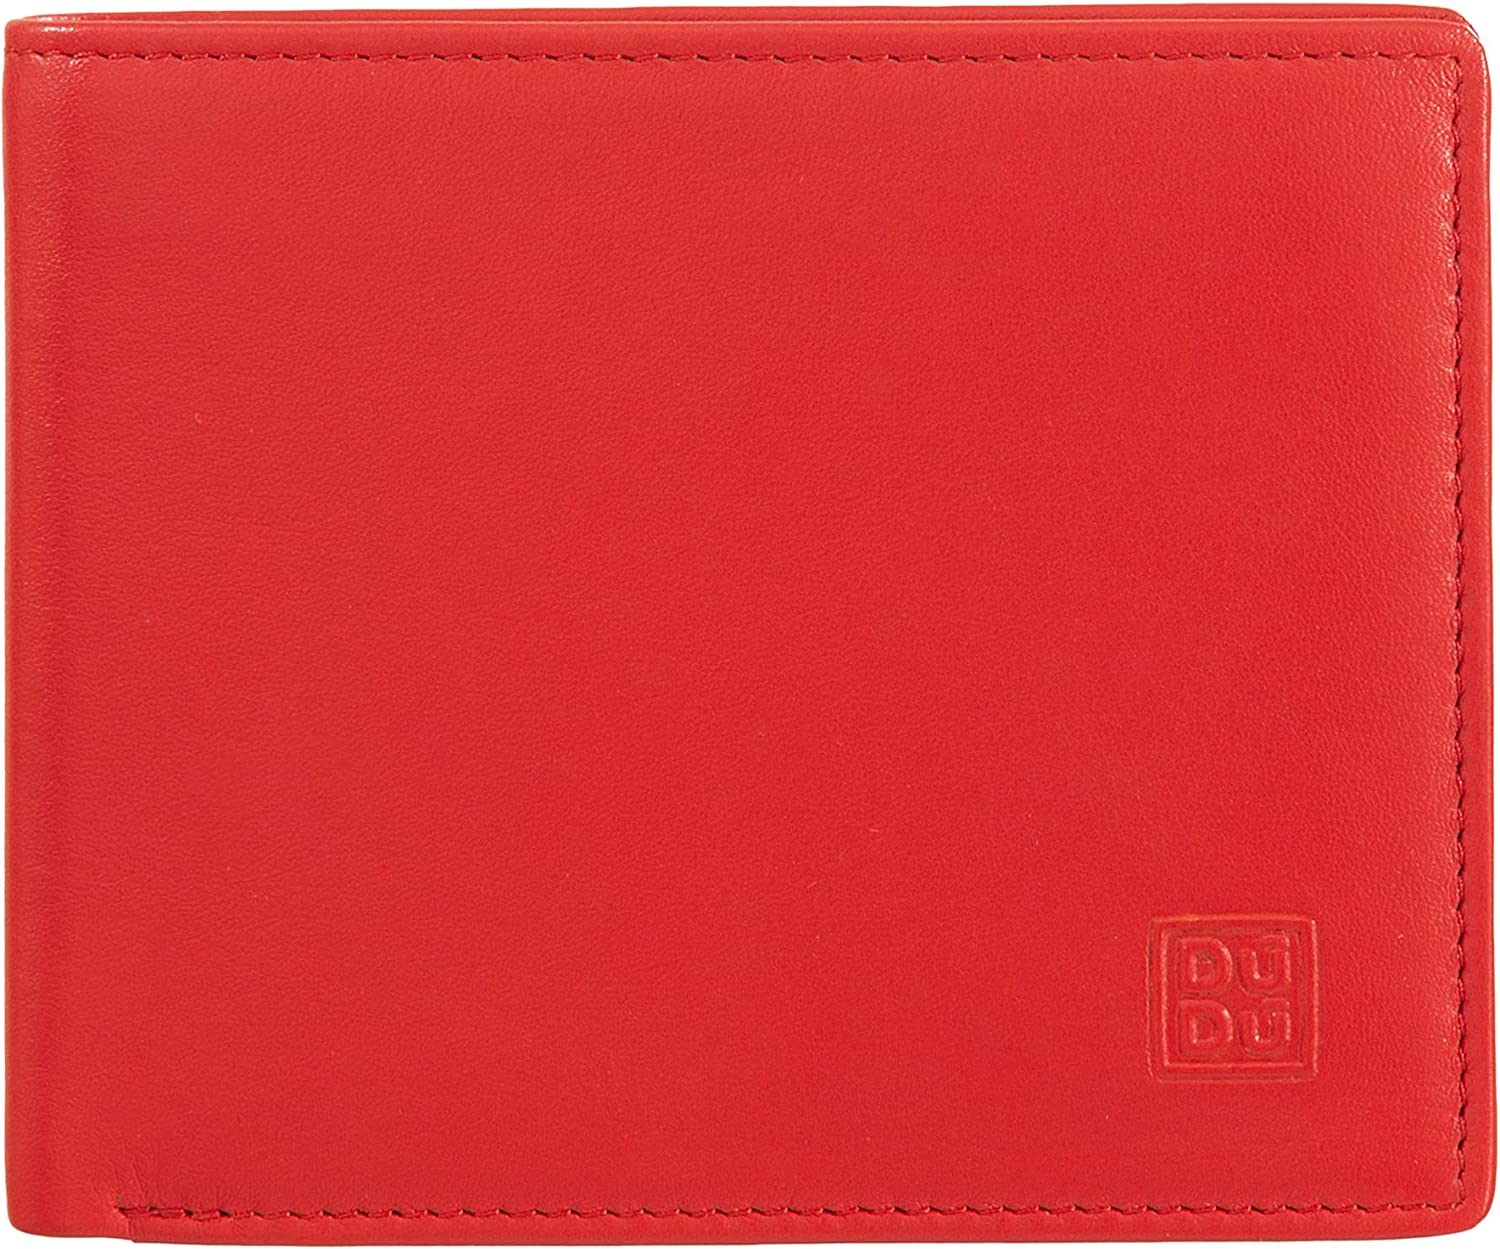 Man's wallet multicolour soft leather classic with coin purse DUDU